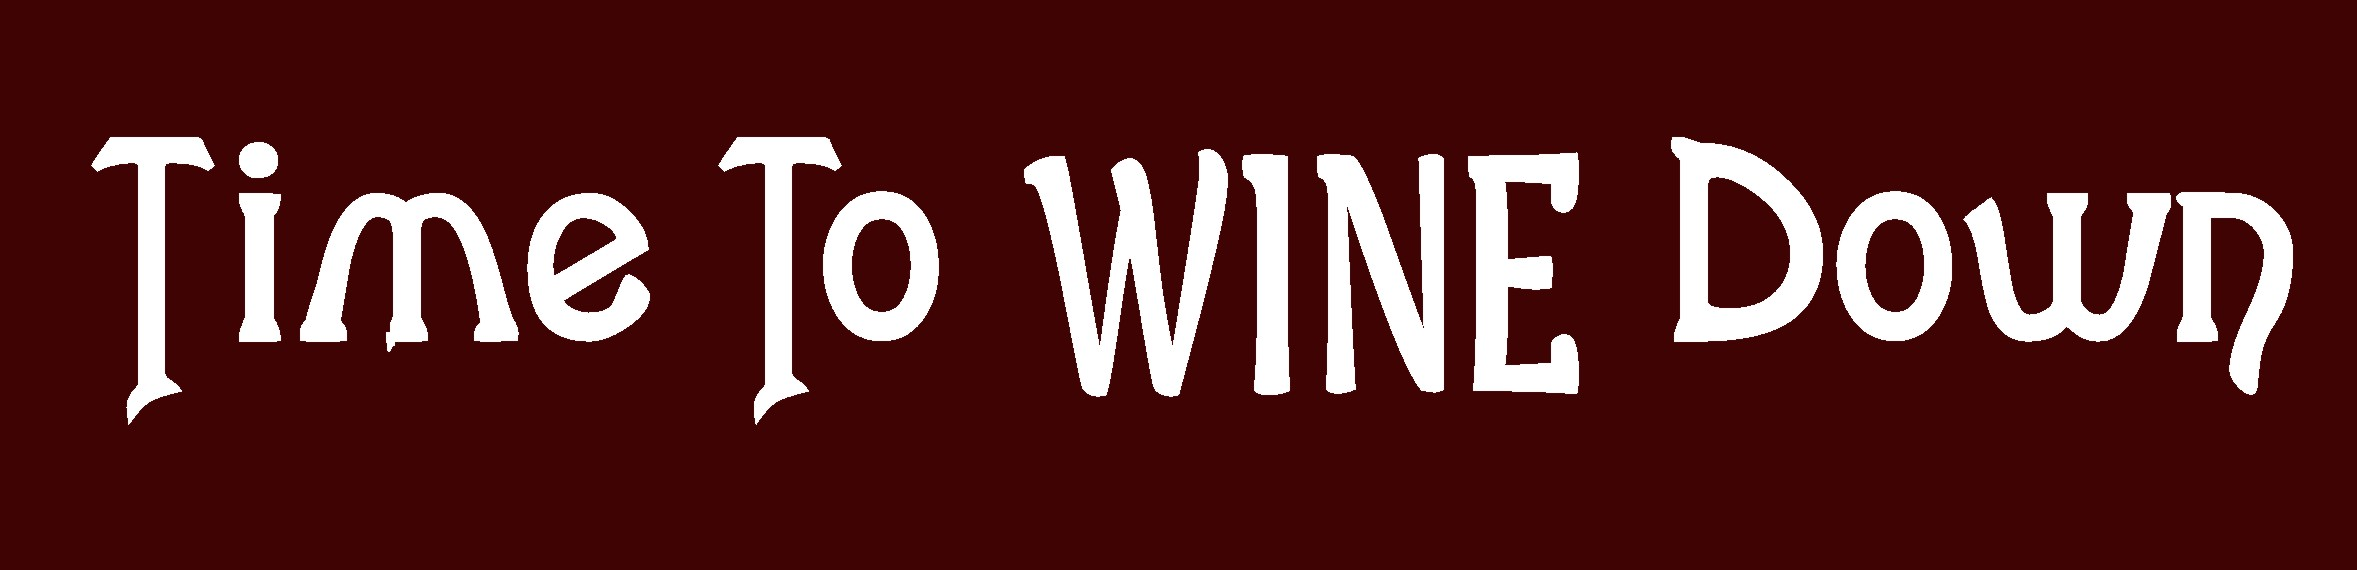 """TIME TO WINE DOWN 8"""" WOODEN BLOCK SIGN"""